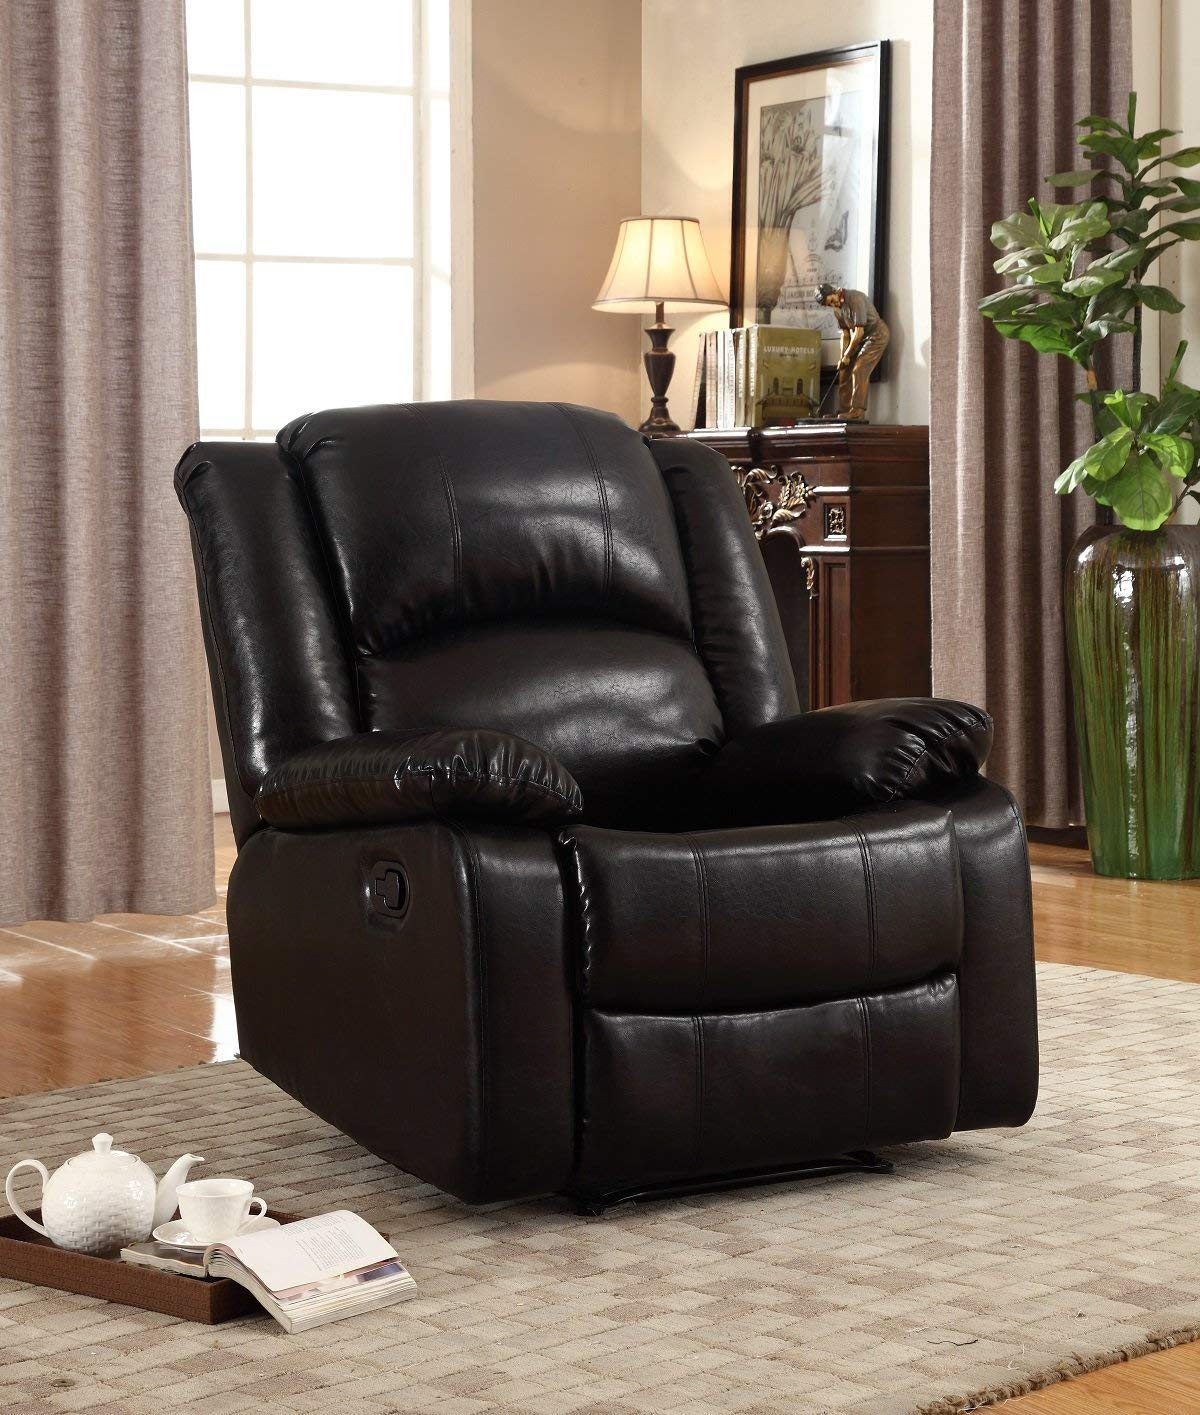 NHI Express Samantha Black Bonded Leather Recliner